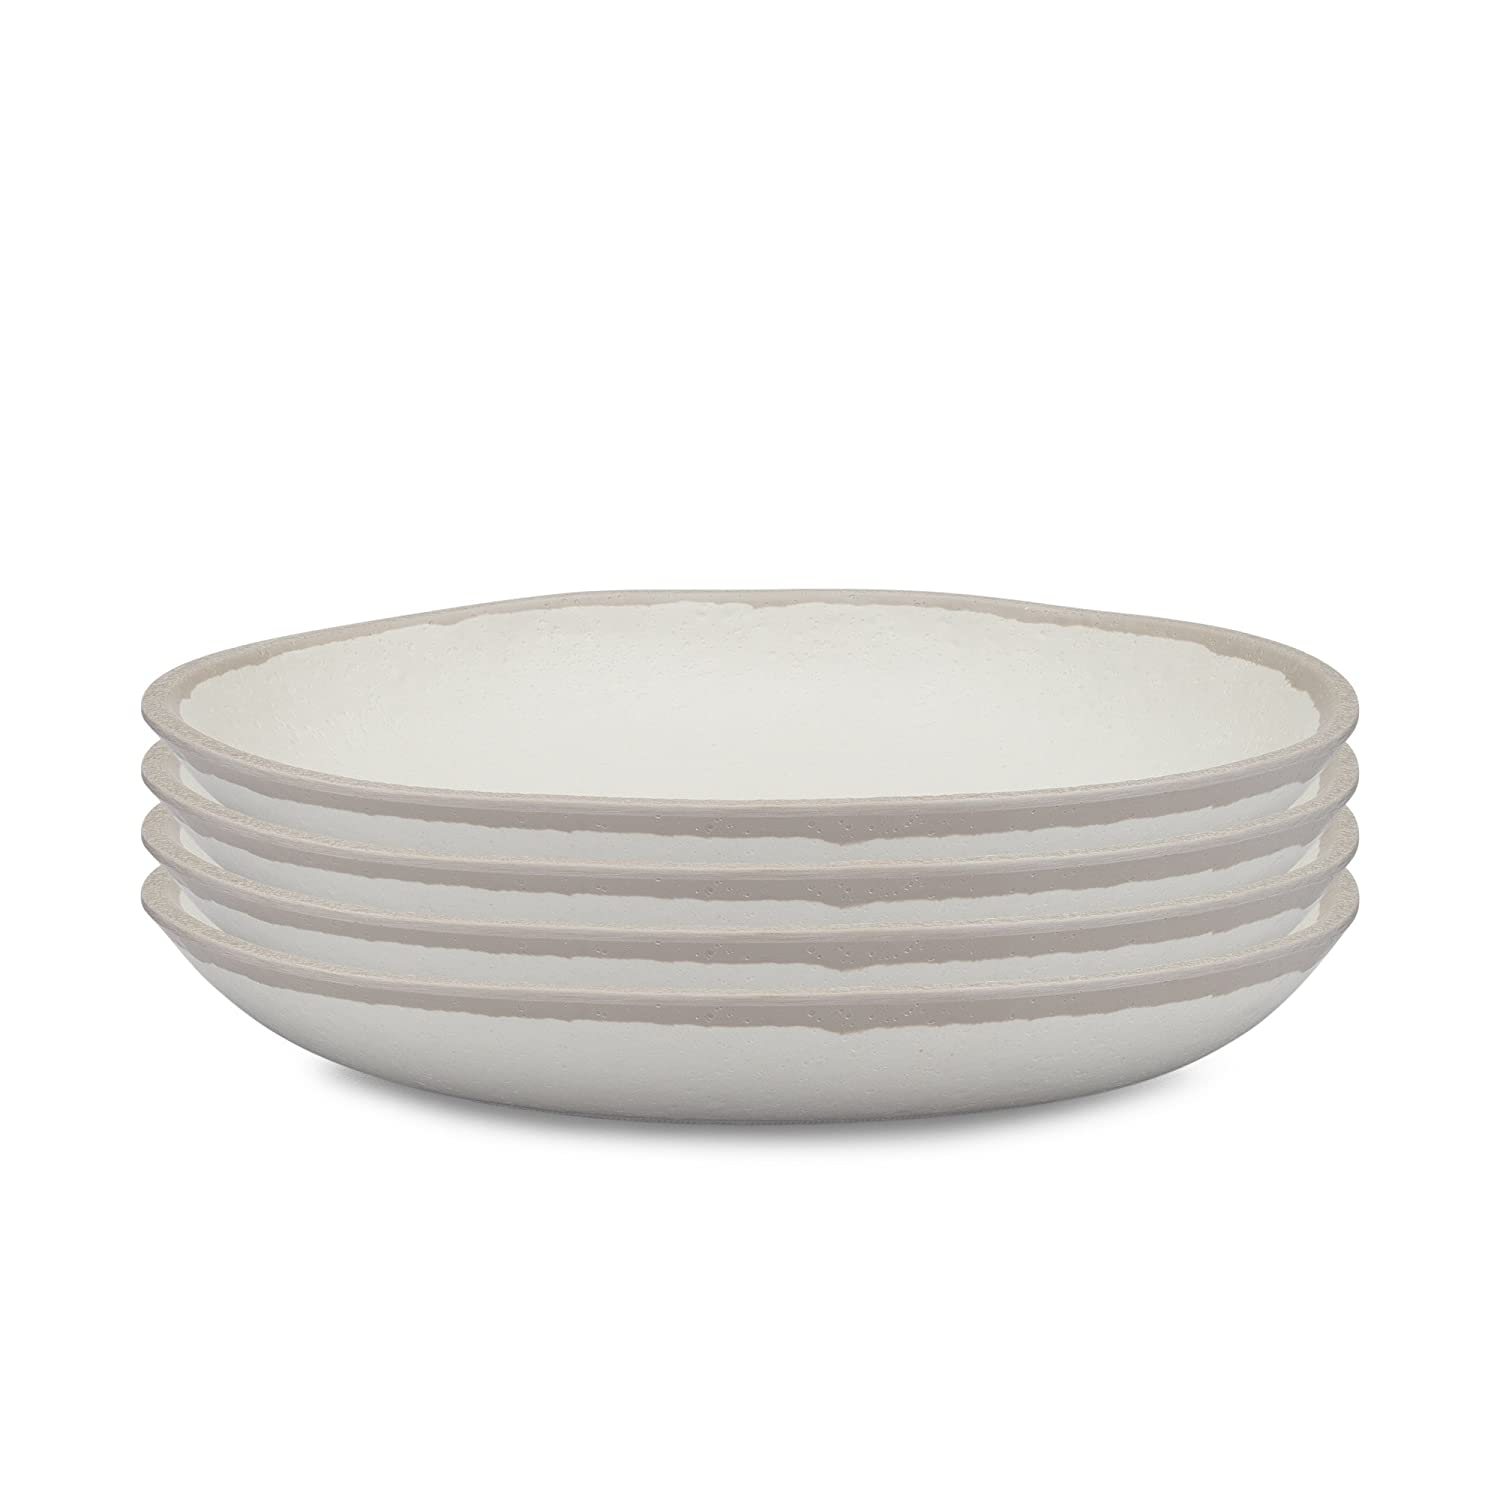 Q Squared Potter Collection Set of 4 Gray POTST02 8-Inches Stone BPA-Free and Shatterproof Melamine and Bamboo Salad Plate